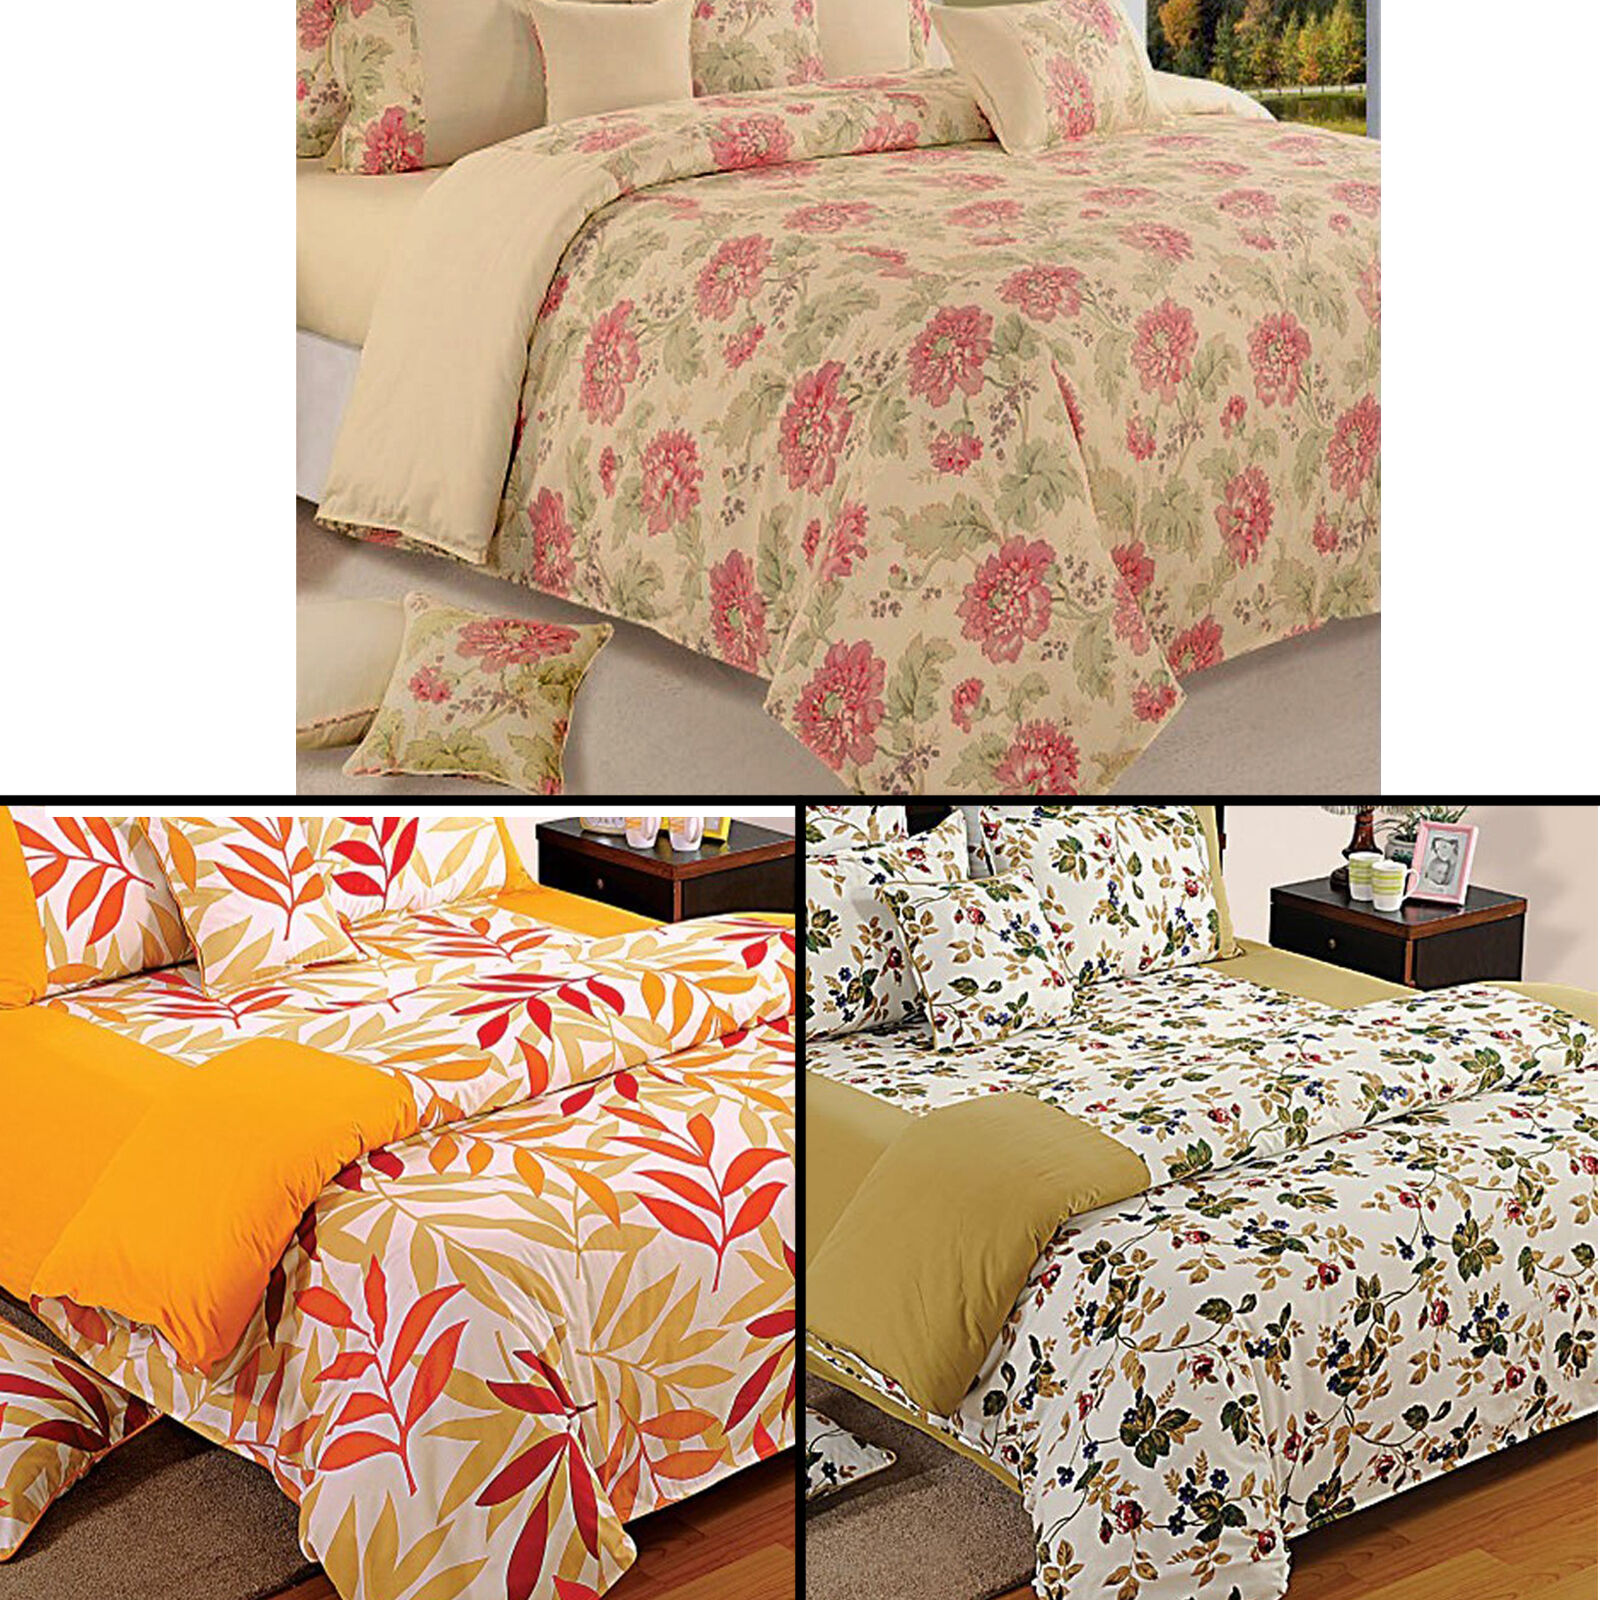 100% Cotton Twin Queen King Size Decorative Duvet Cover with Pillow Cover-7420